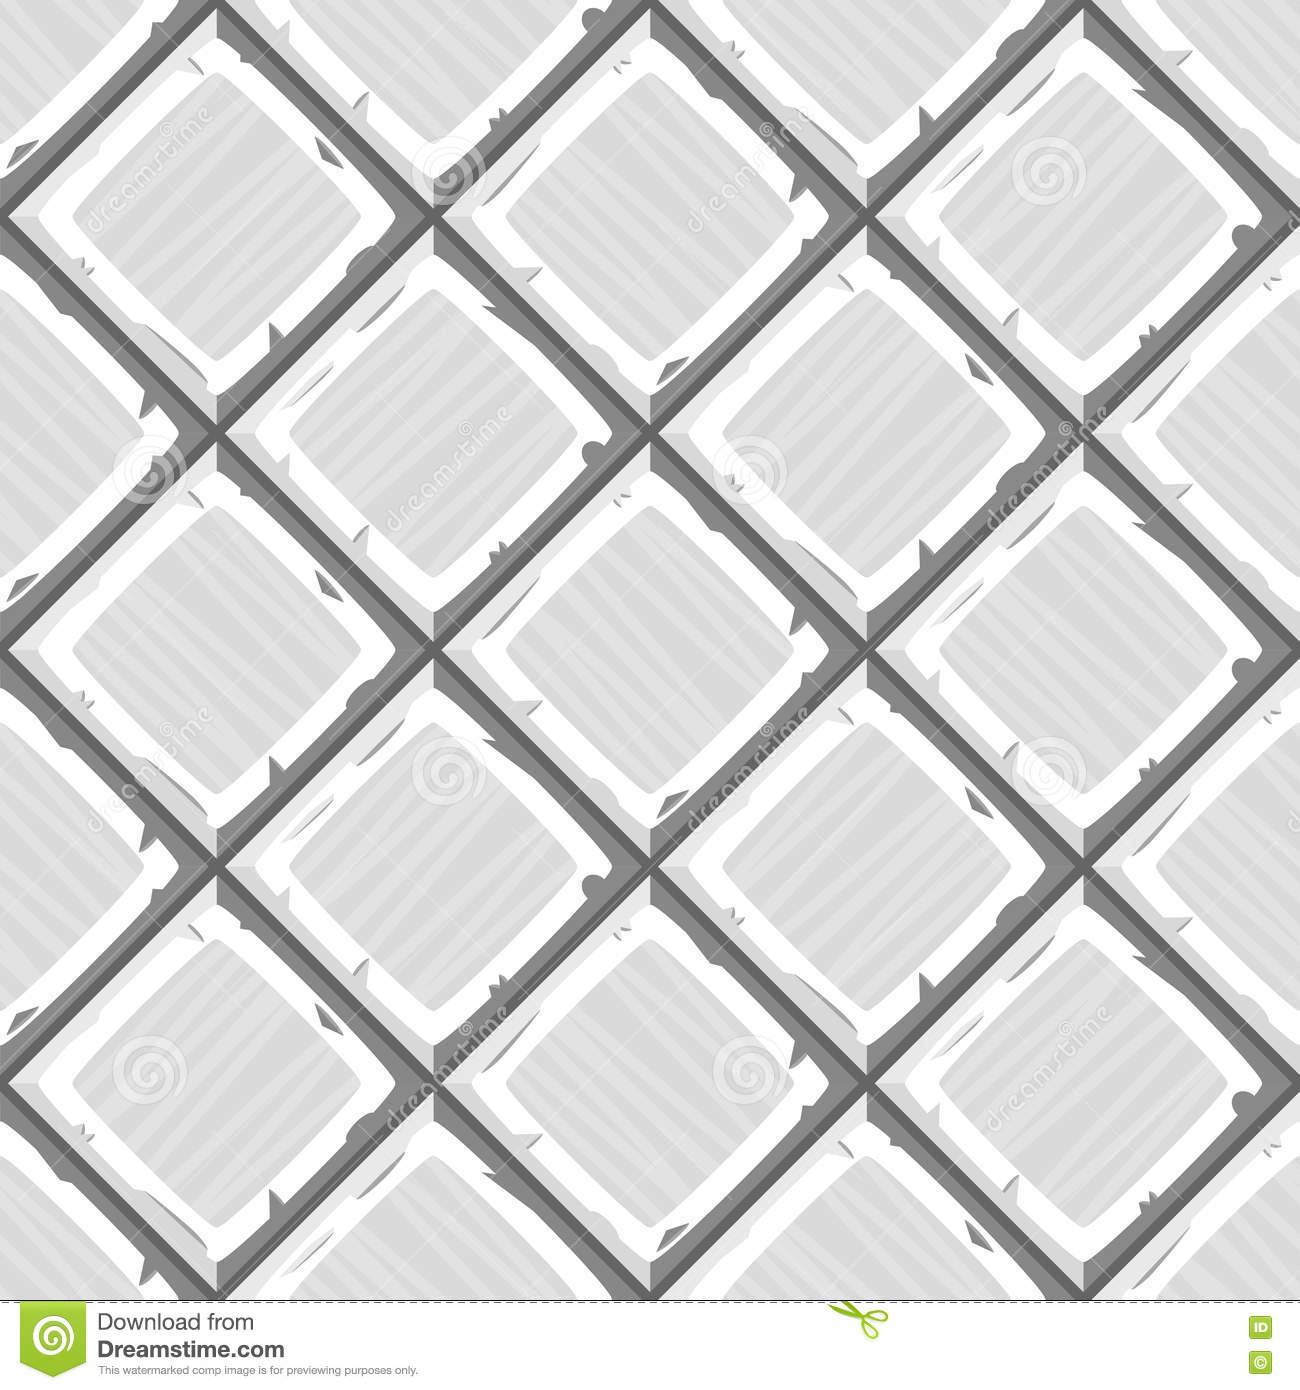 Cartoon Hand Drown White Old Diagonal Seamless Tiles